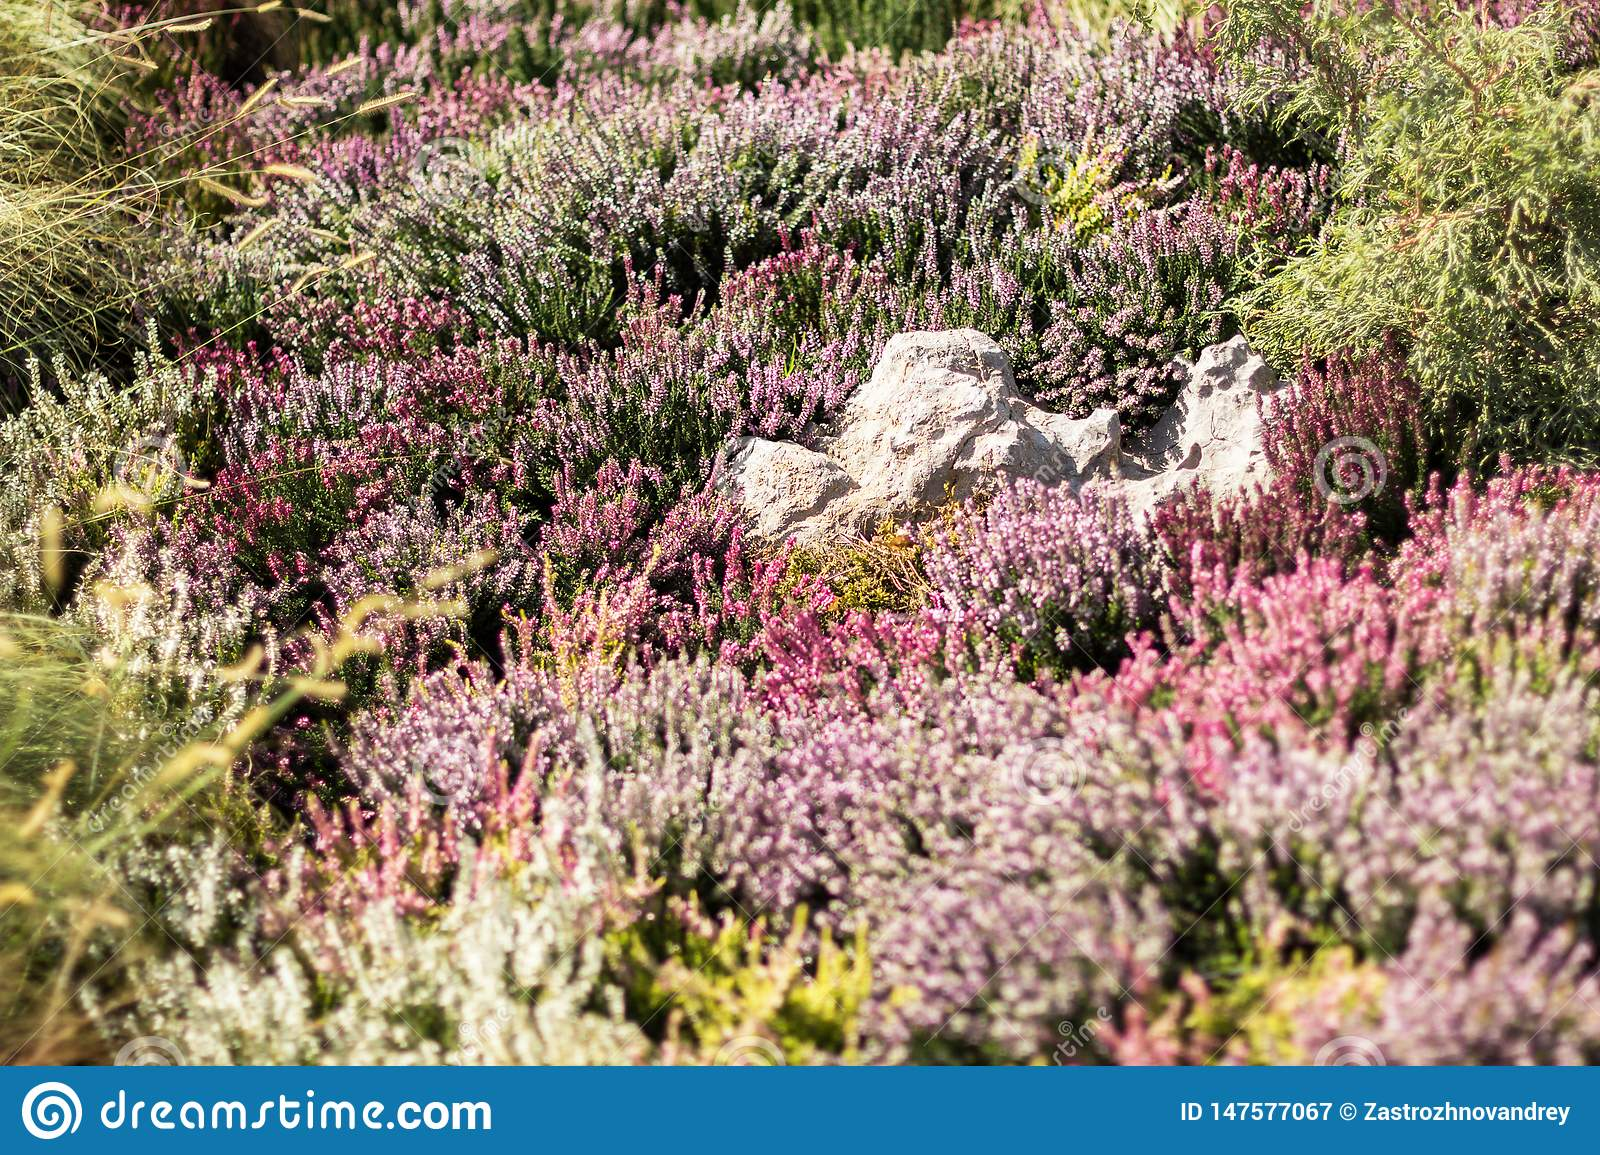 Garden with flowering heather, close-up